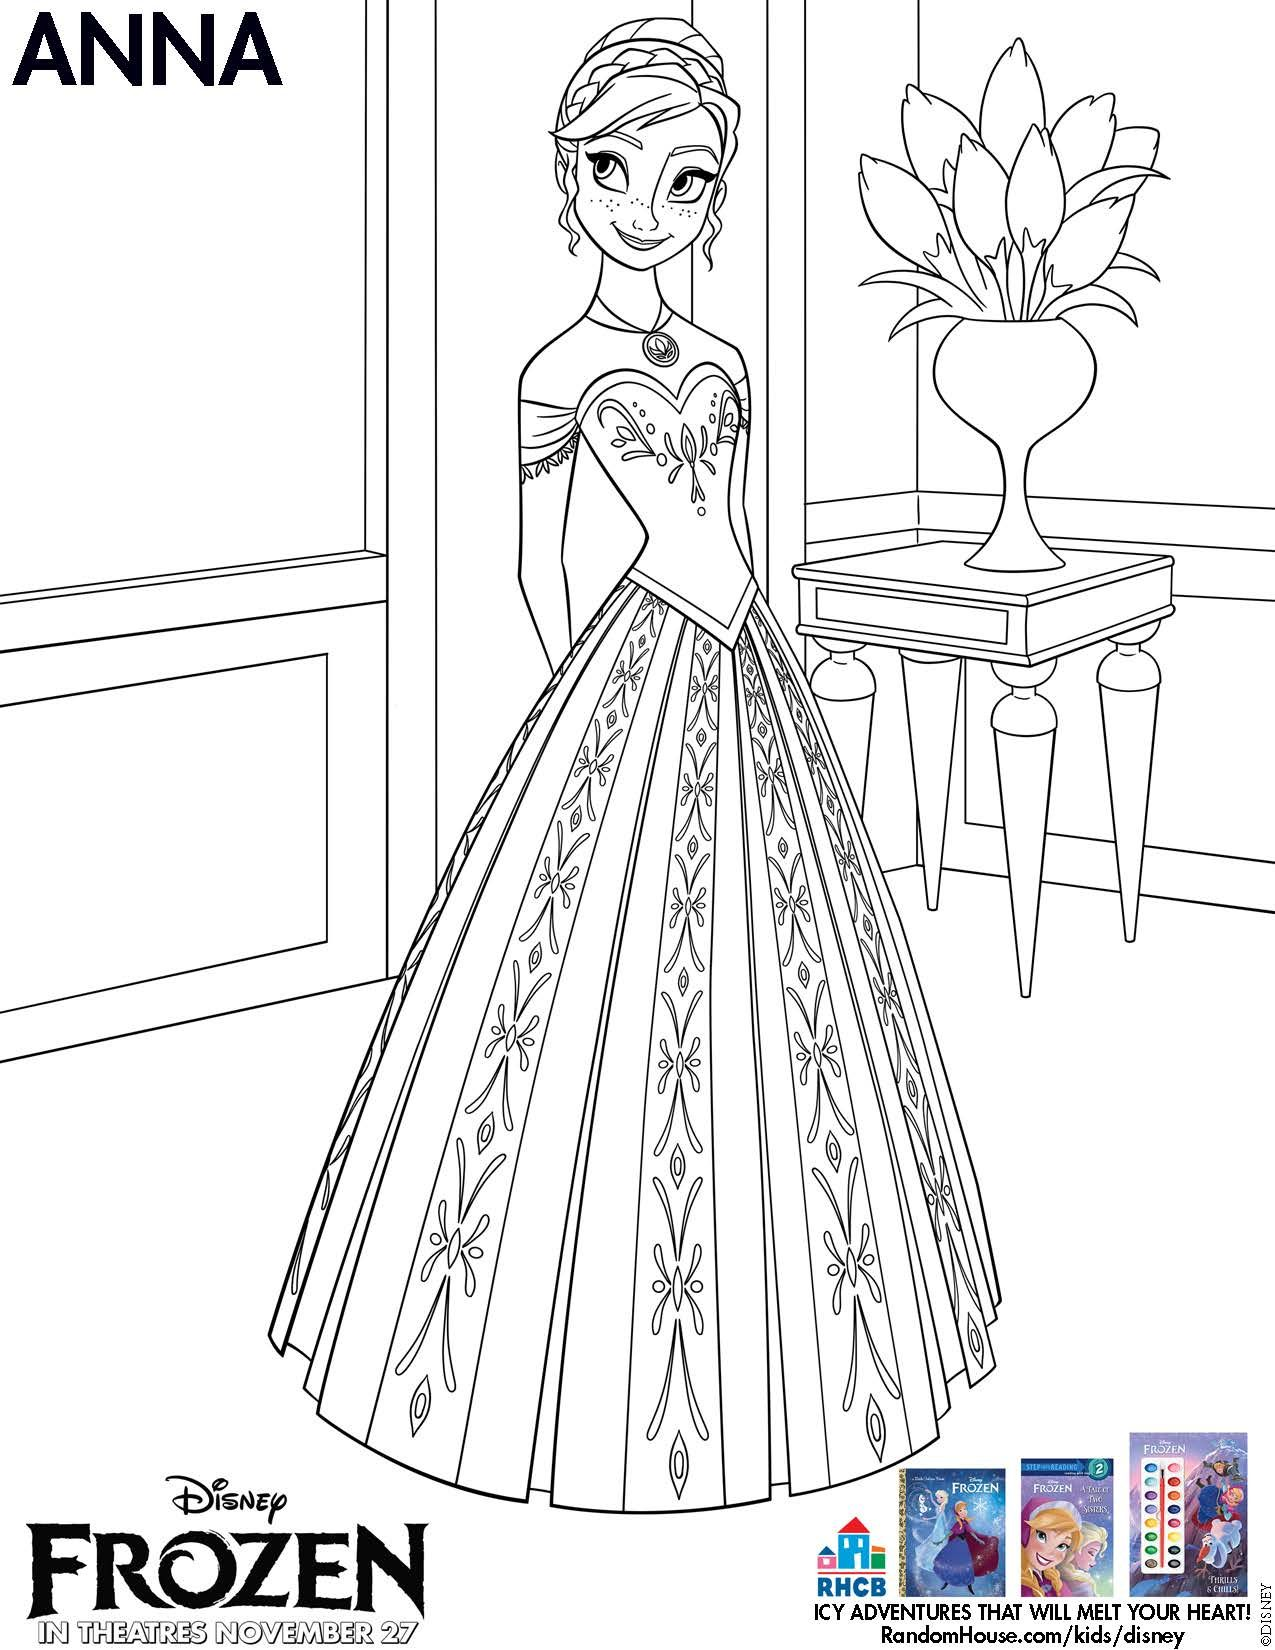 Disney S Frozen 2 Printable Color Sheets Frozen Coloring Pages